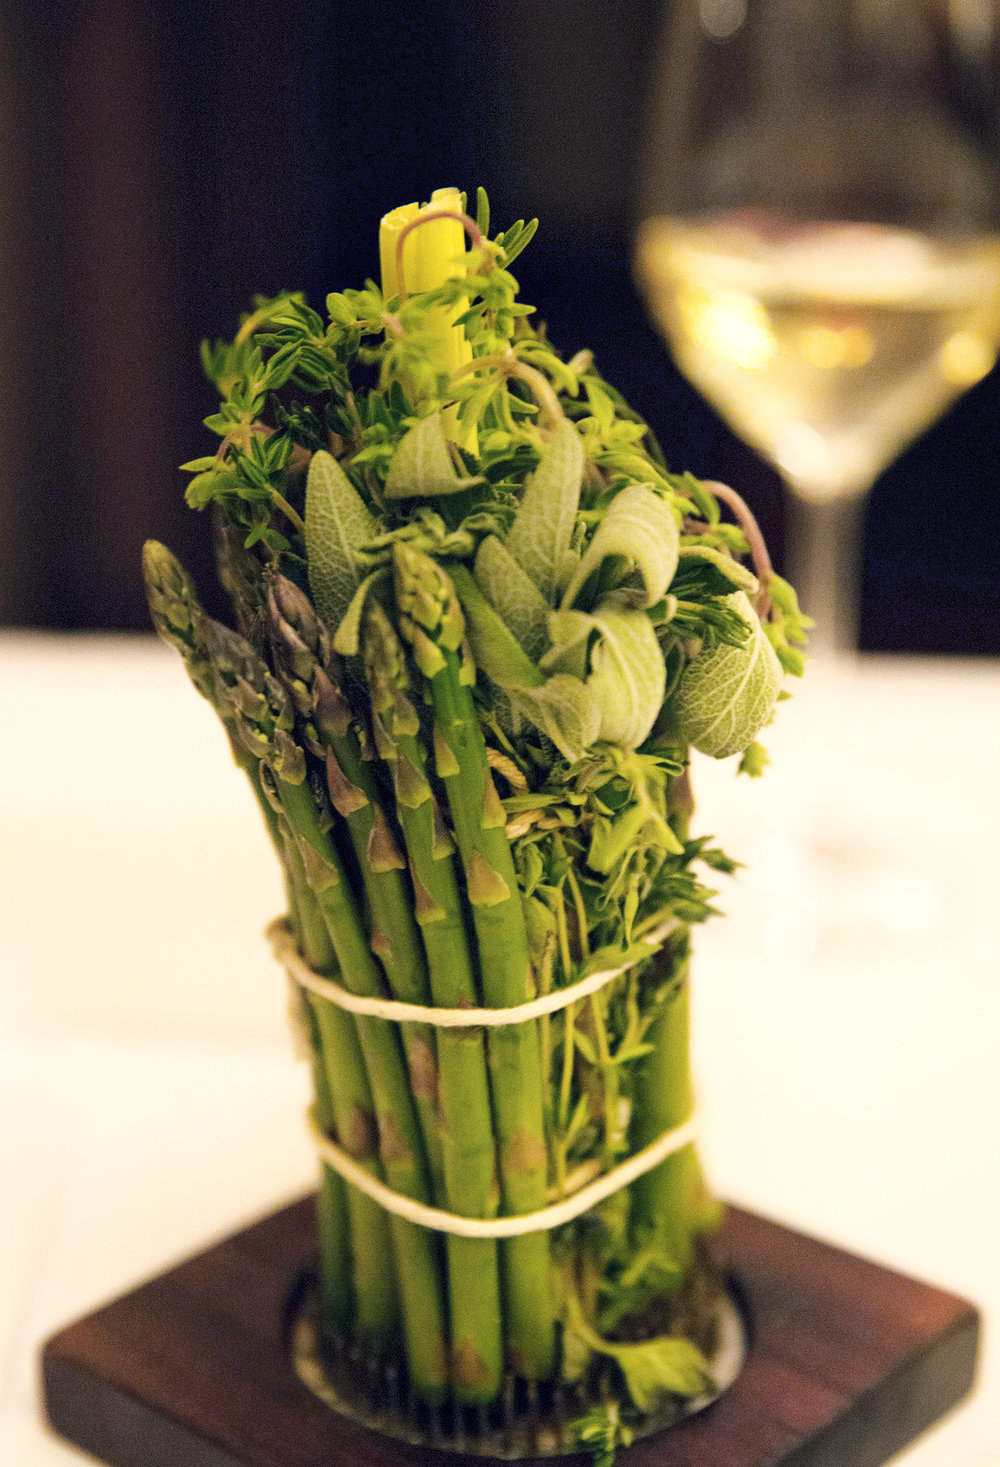 Asparagus at Blue Hill restaurant, NYC - Monica R. Goya